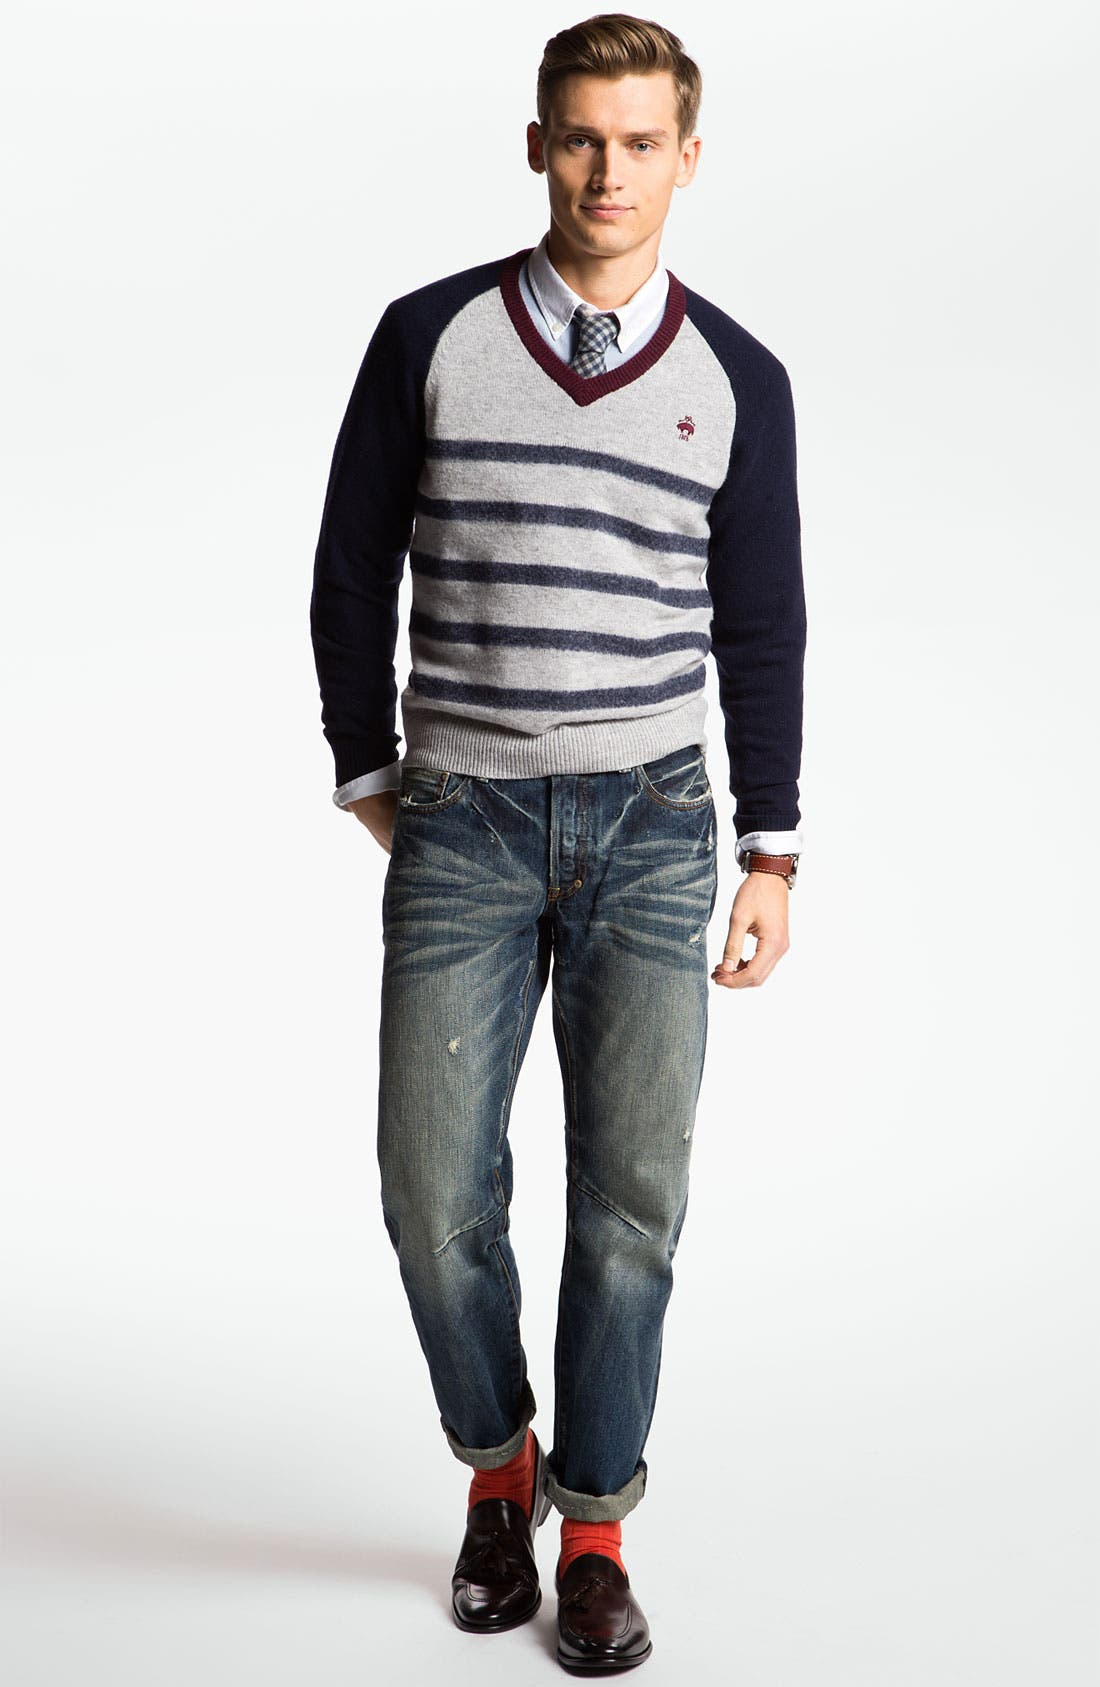 Main Image - Brooks Brothers Sweater, Oxford Shirt & PRPS Straight Leg Jeans